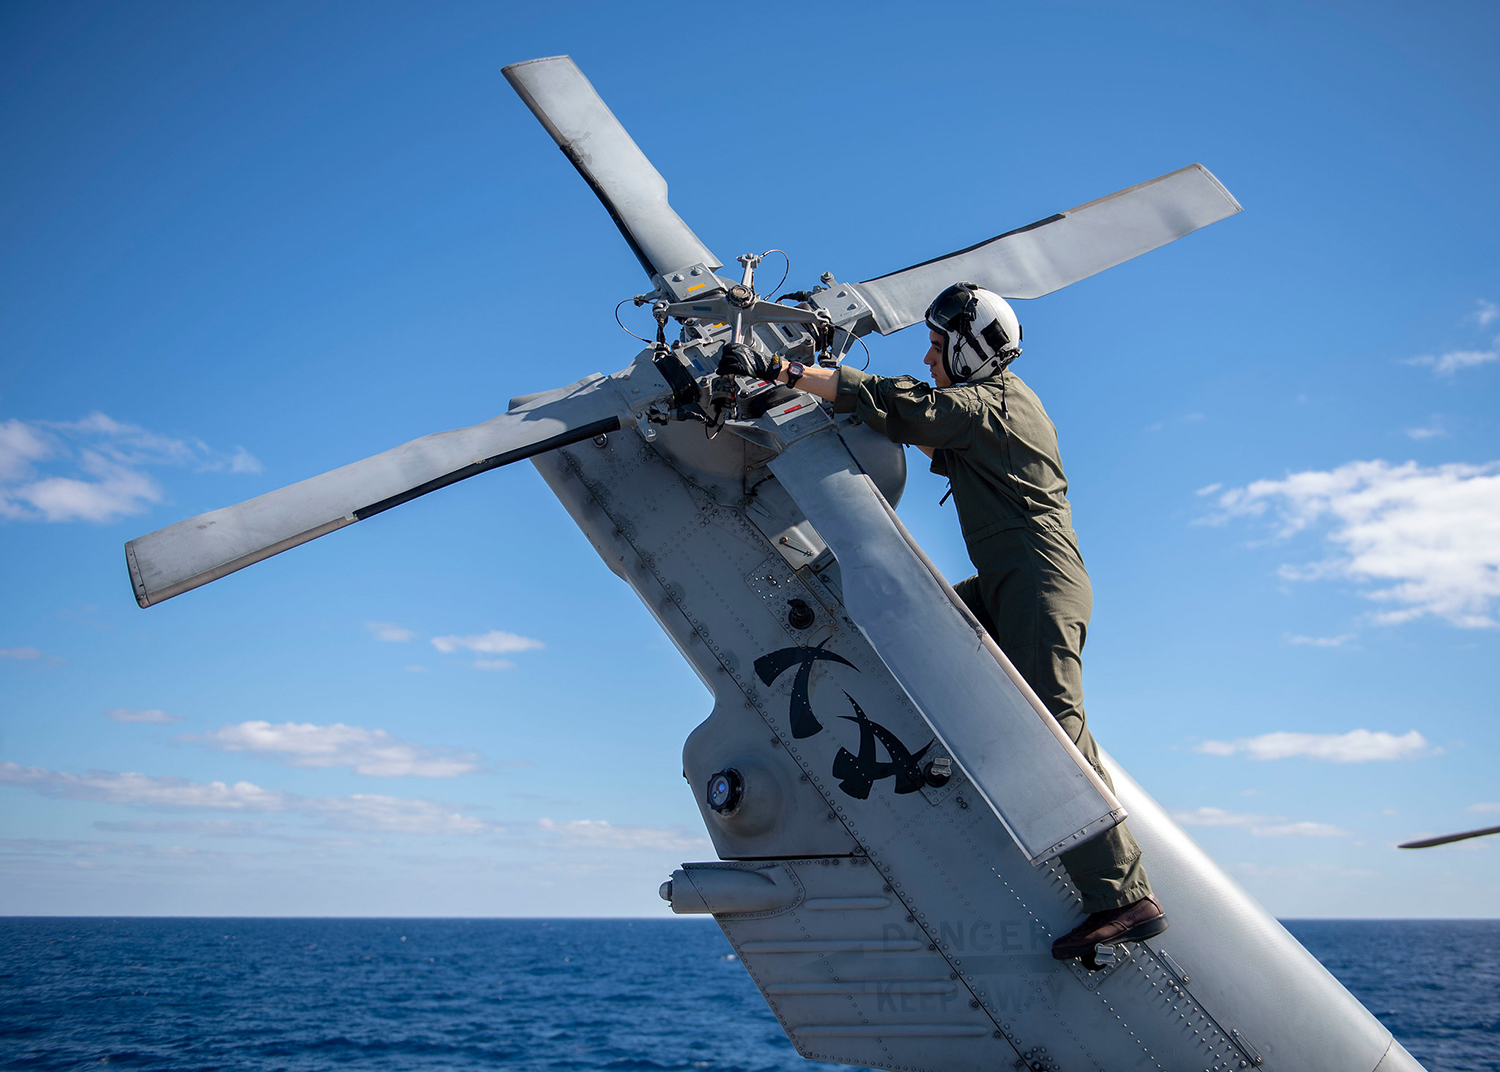 Lt. Austin Gallegos verifies tail rotor integrity on a MH-60R Sea Hawk on July 19, 2019, aboard the Ticonderoga-class guided-missile cruiser USS Chancellorsville (CG 62) in the Coral Sea. (Mass Communication Specialist 2nd Class John Harris/Navy)